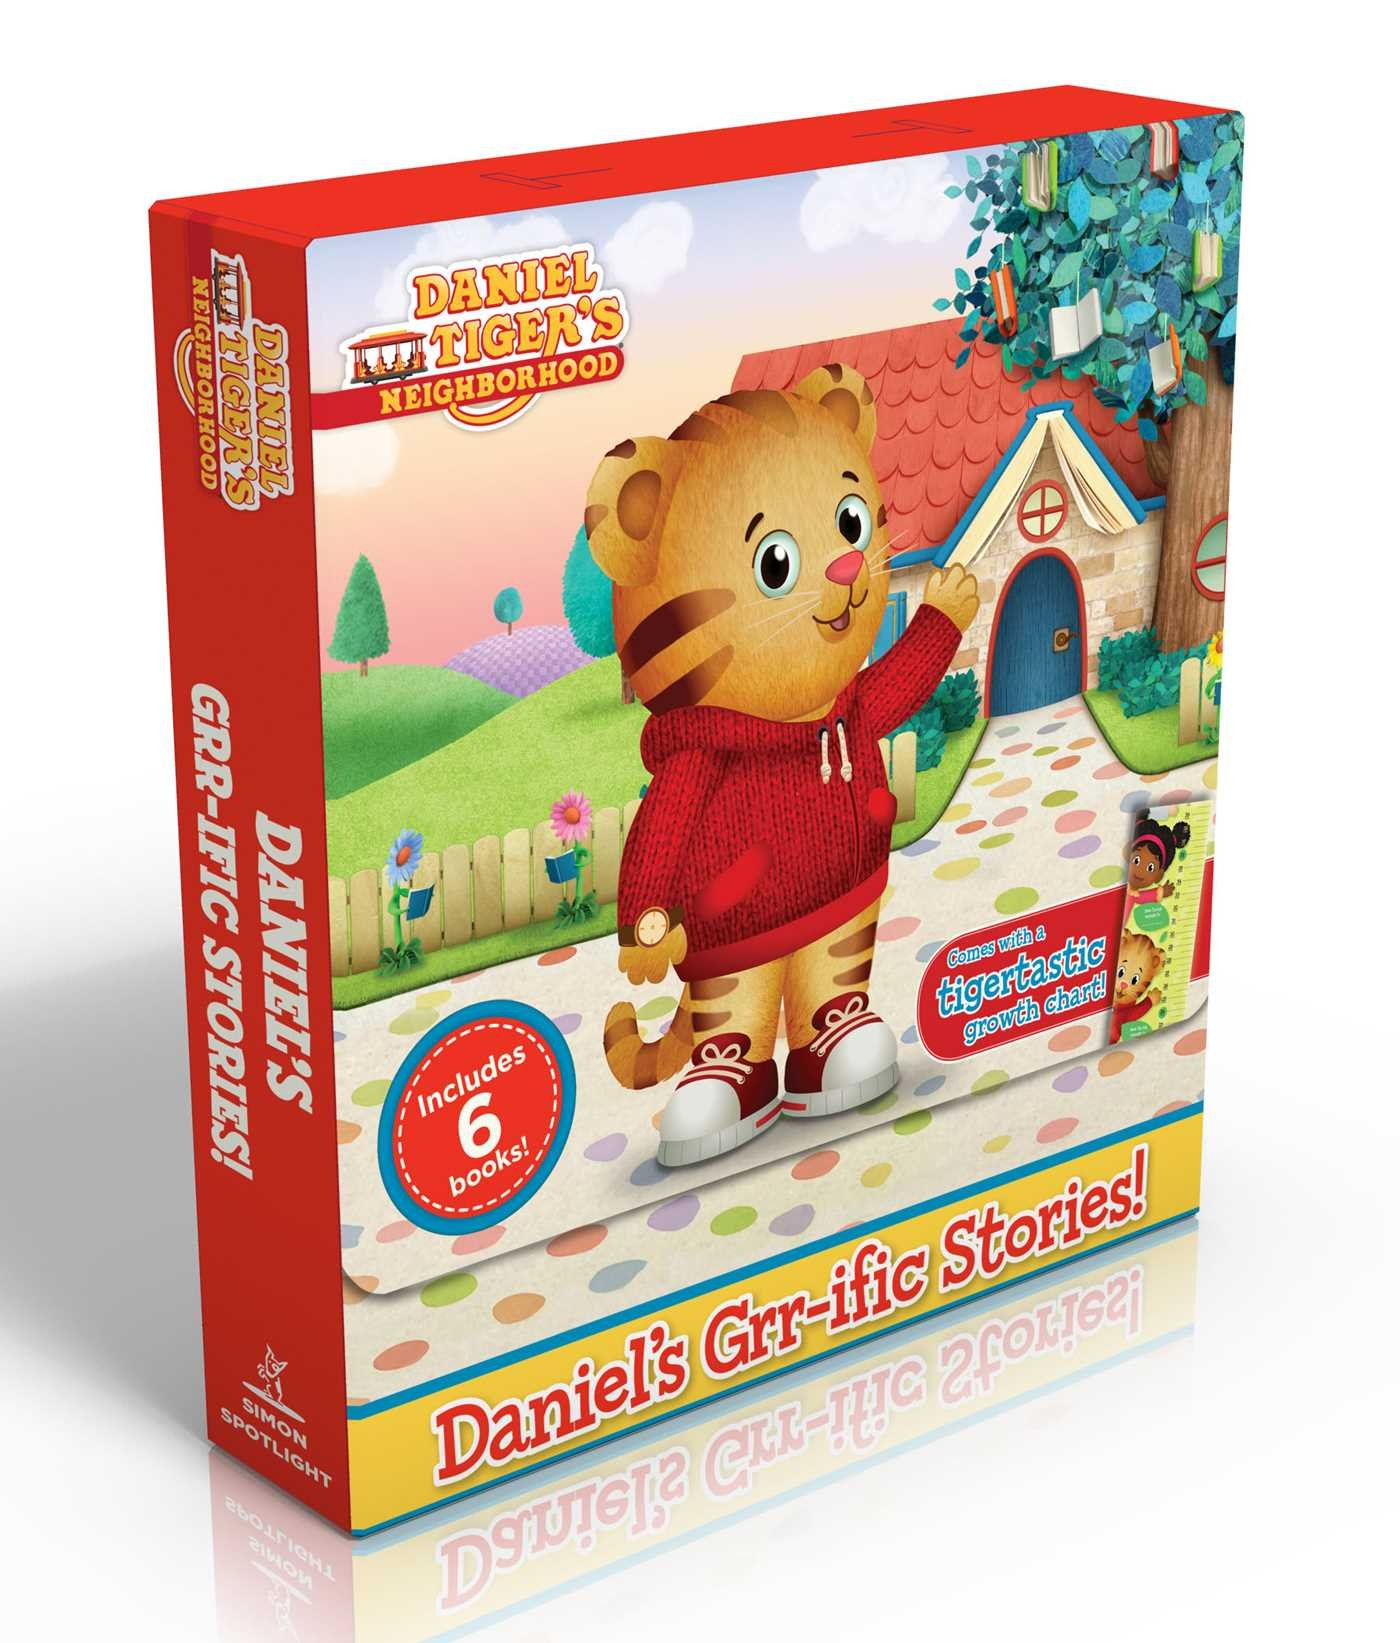 Daniel's Grr-ific Stories! (Comes with a tigertastic growth chart!): Welcome to the Neighborhood!; Daniel Goes to School; Goodnight, Daniel Tiger; ... Baby Is Here! (Daniel Tiger's Neighborhood)